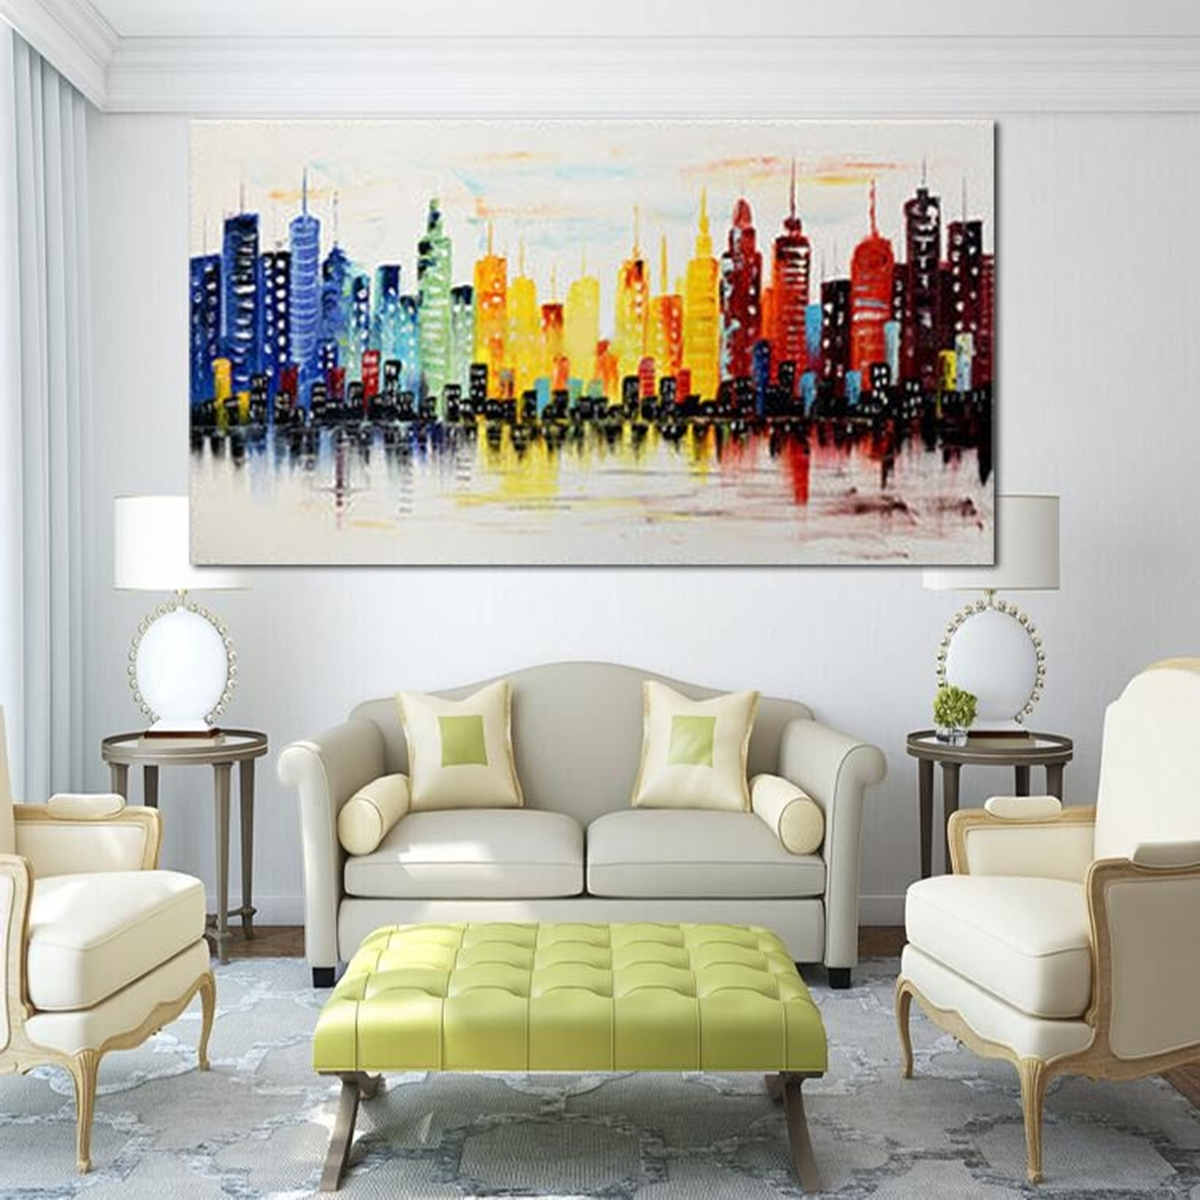 120X60Cm Modern City Canvas Abstract Painting Print Living Room Art Throughout Preferred Living Room Painting Wall Art (View 4 of 15)